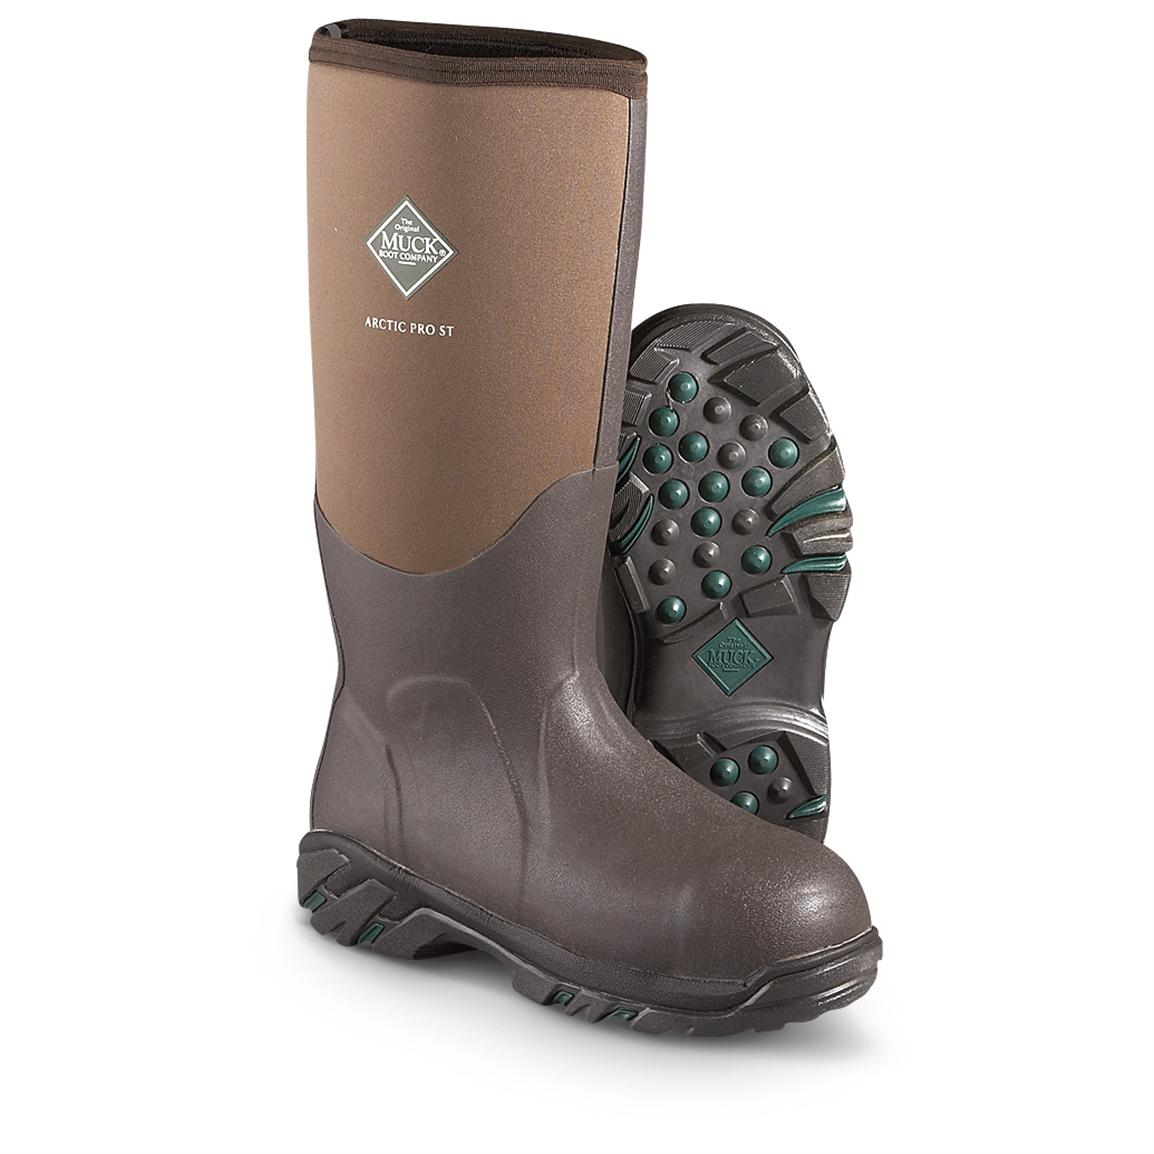 Buy Wellies, welly warmers or wellington accessories from Aigle, Hunter Boot, Le Chameau, Wedgewelly and other top brands available for next day delivery.